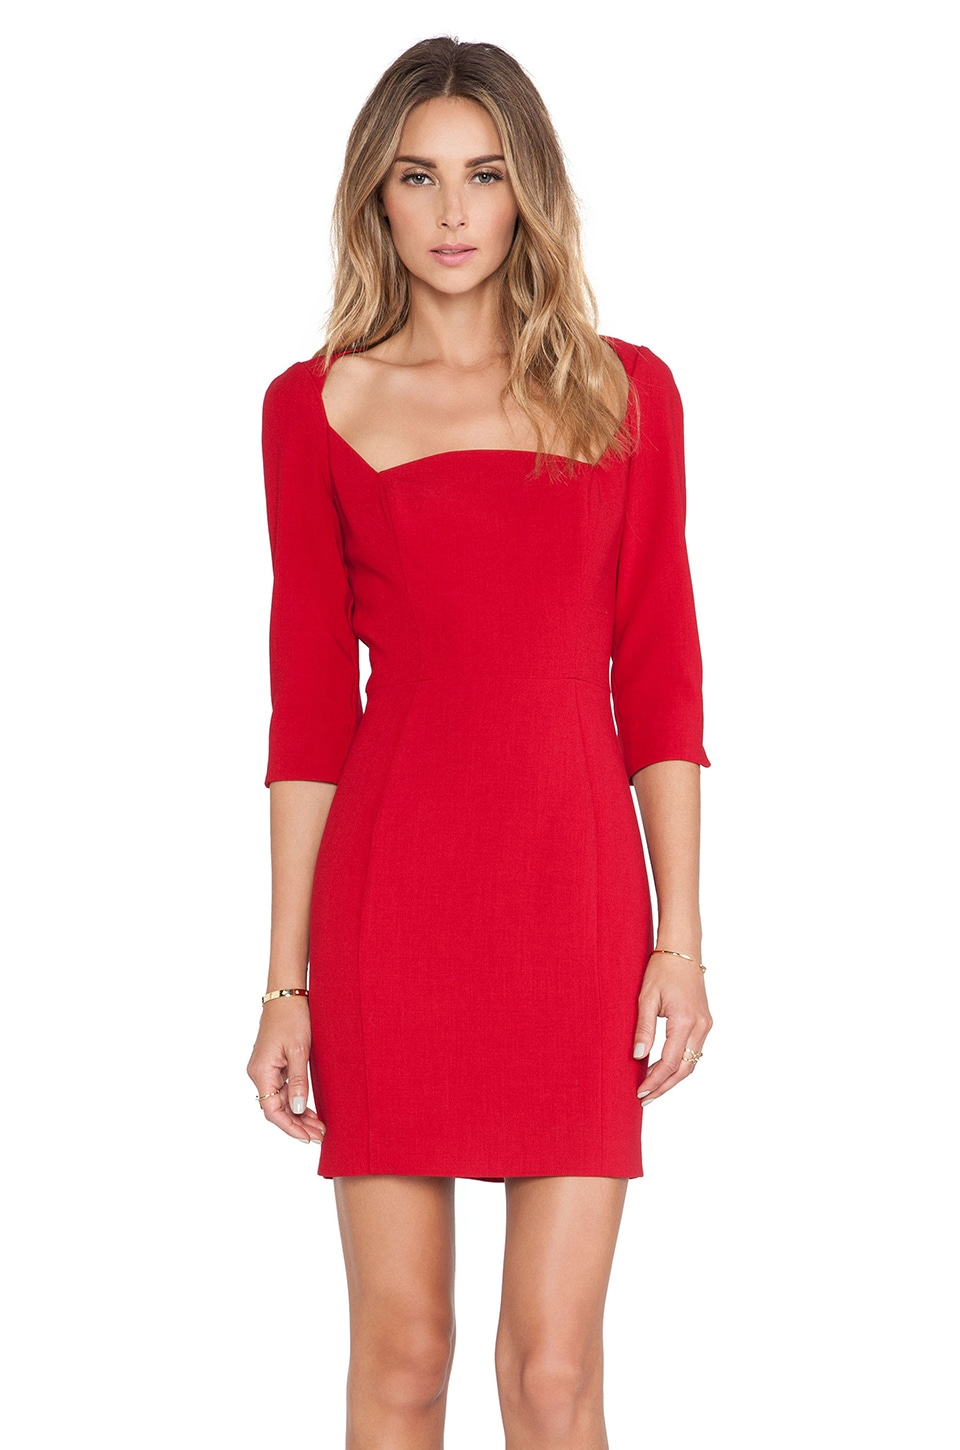 Black Halo x REVOLVE Emeline Sheath Mini Dress in Bonfire